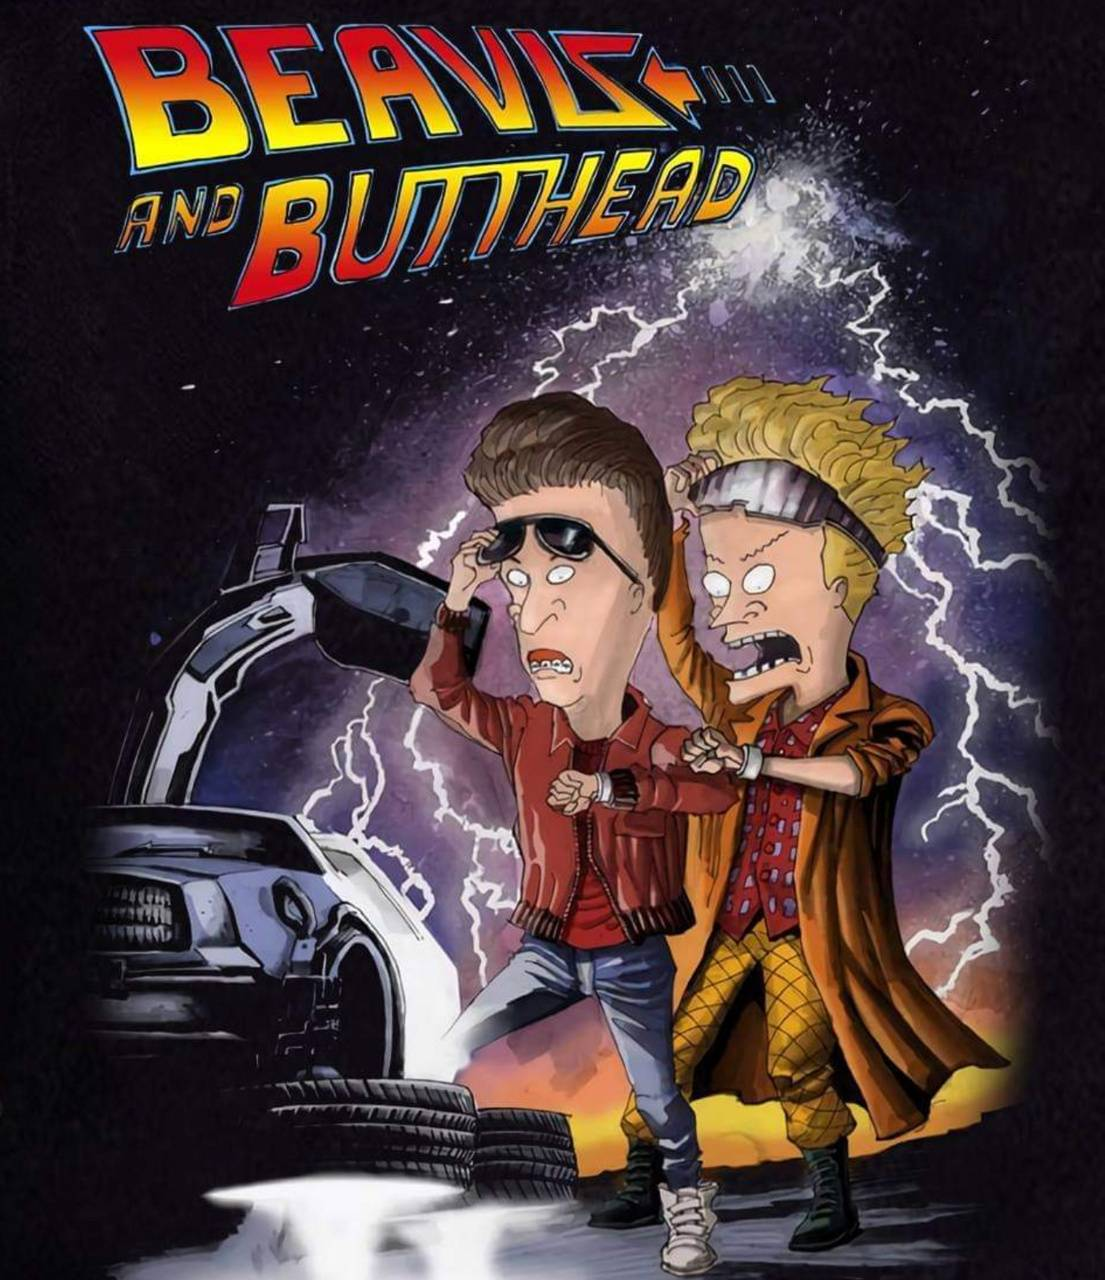 Beavis And Butthead Wallpaper By Chnewhouse4444 0f Free On Zedge